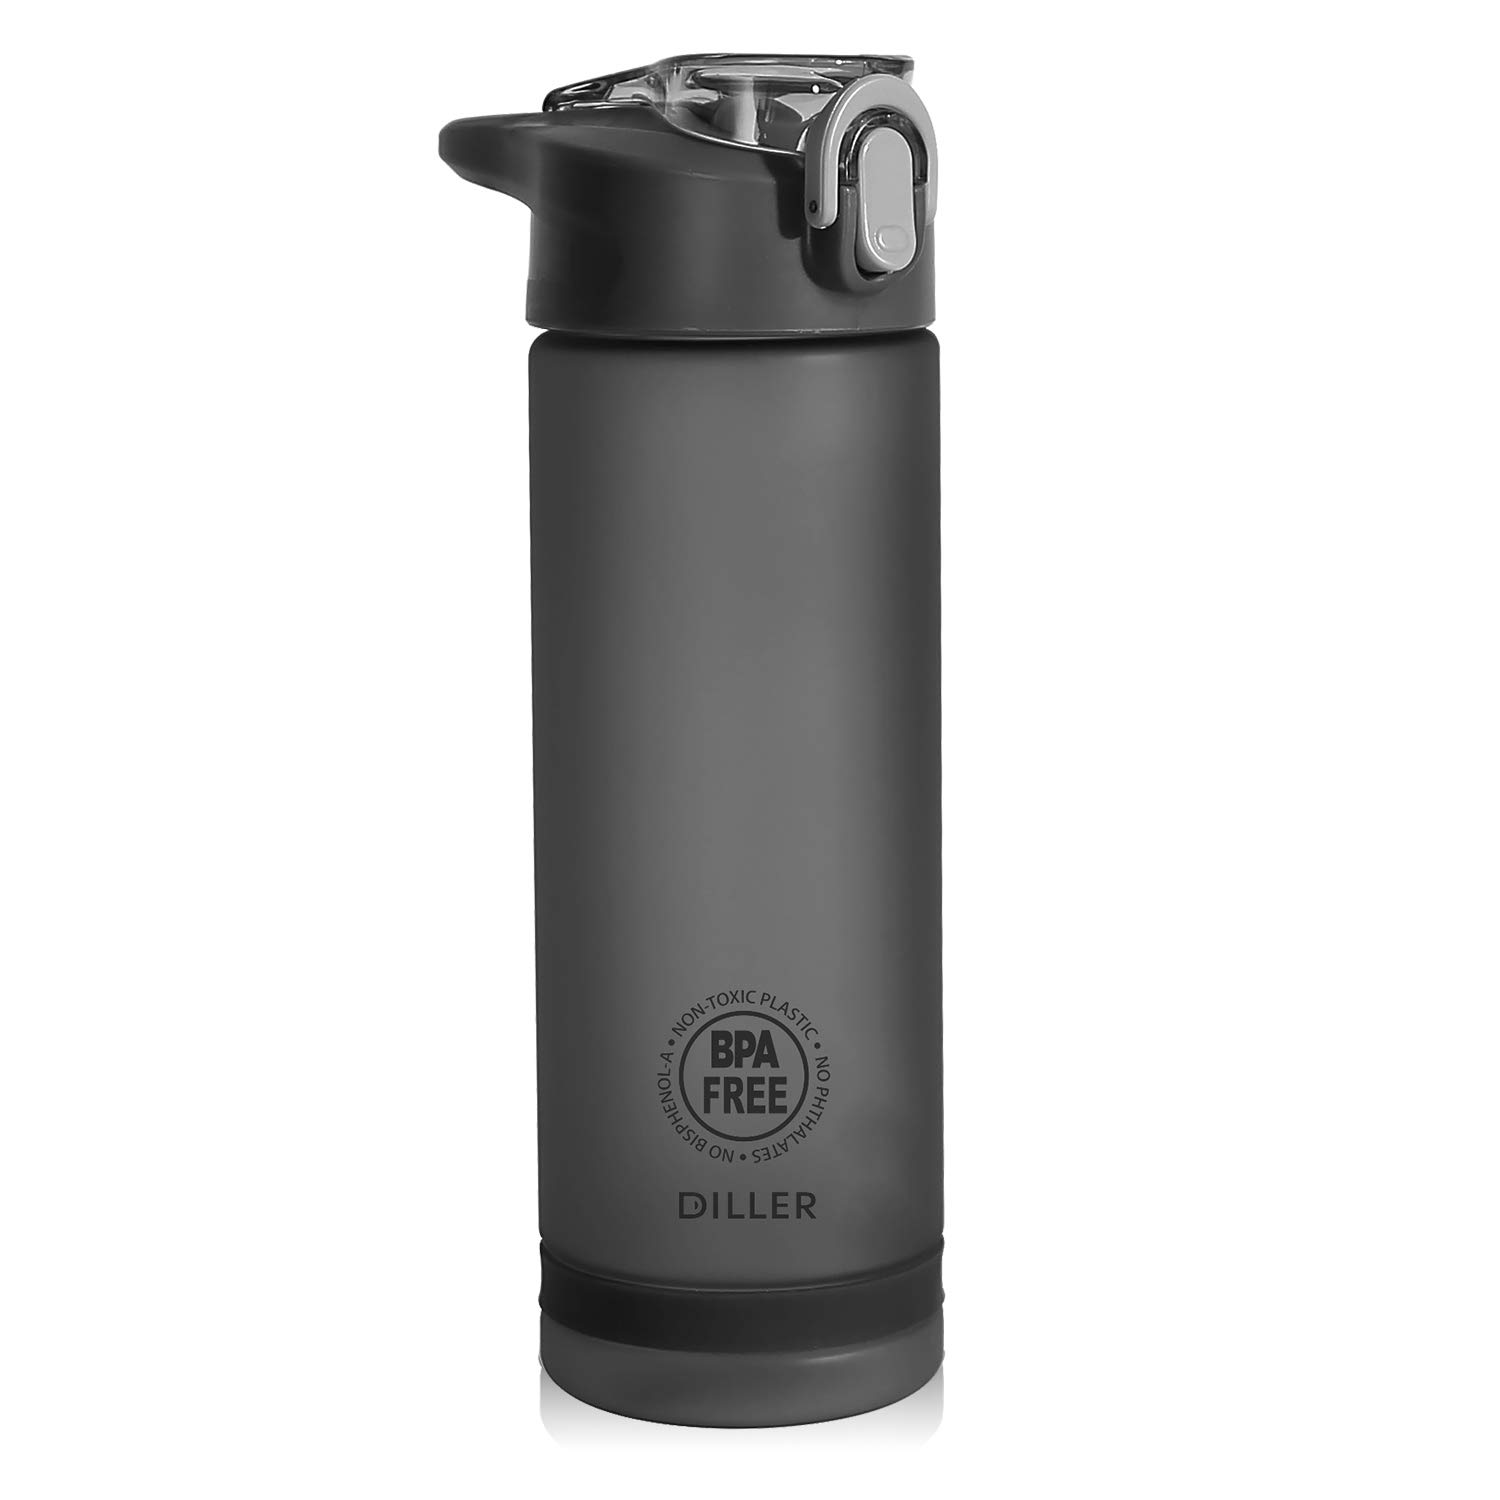 0c390e6675 Diller Water Bottle with Straw - 25 Oz US Tritan BPA Free Sport Water  Bottle with Flip-Flop Lid